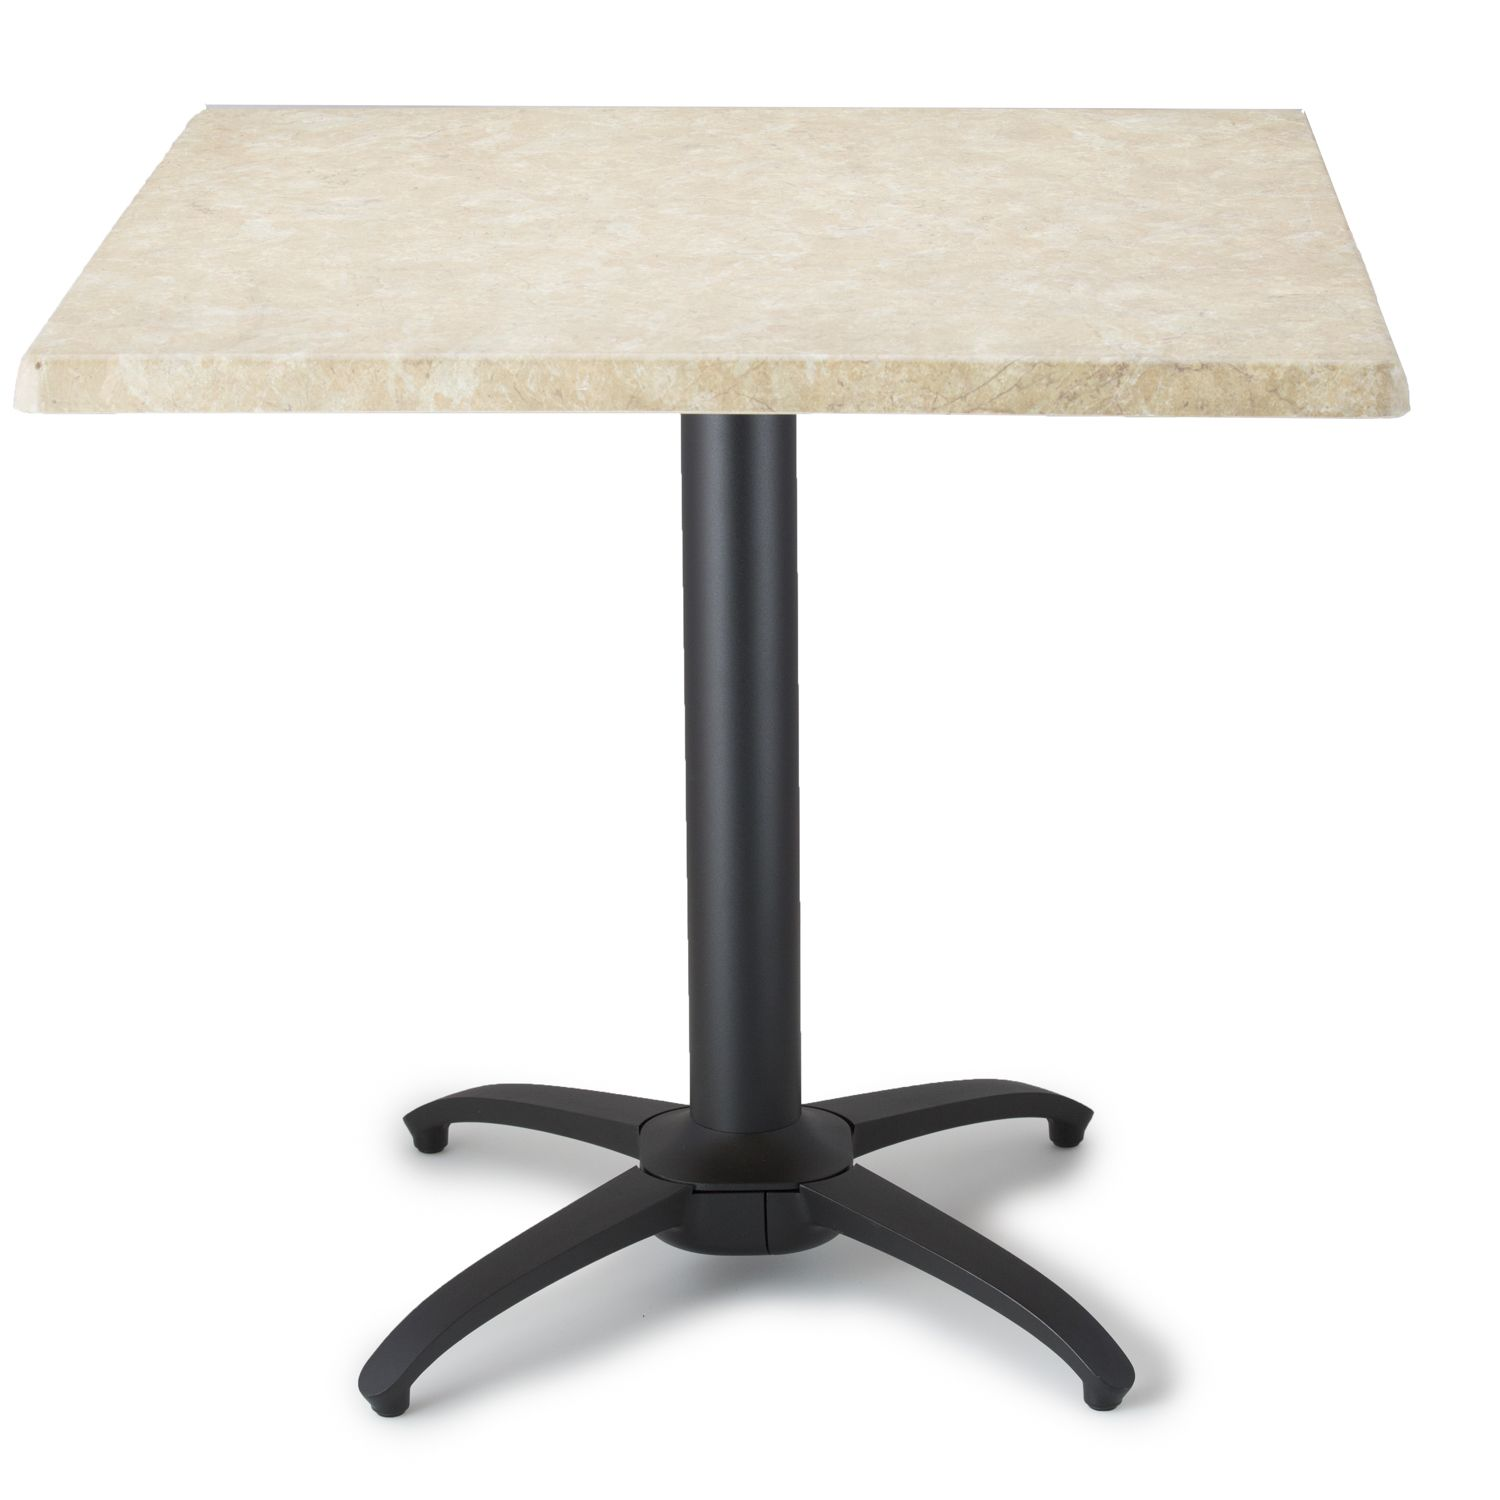 No-Rock Avenue - Self-Stabilizing Table Bases with Topalit Table Top